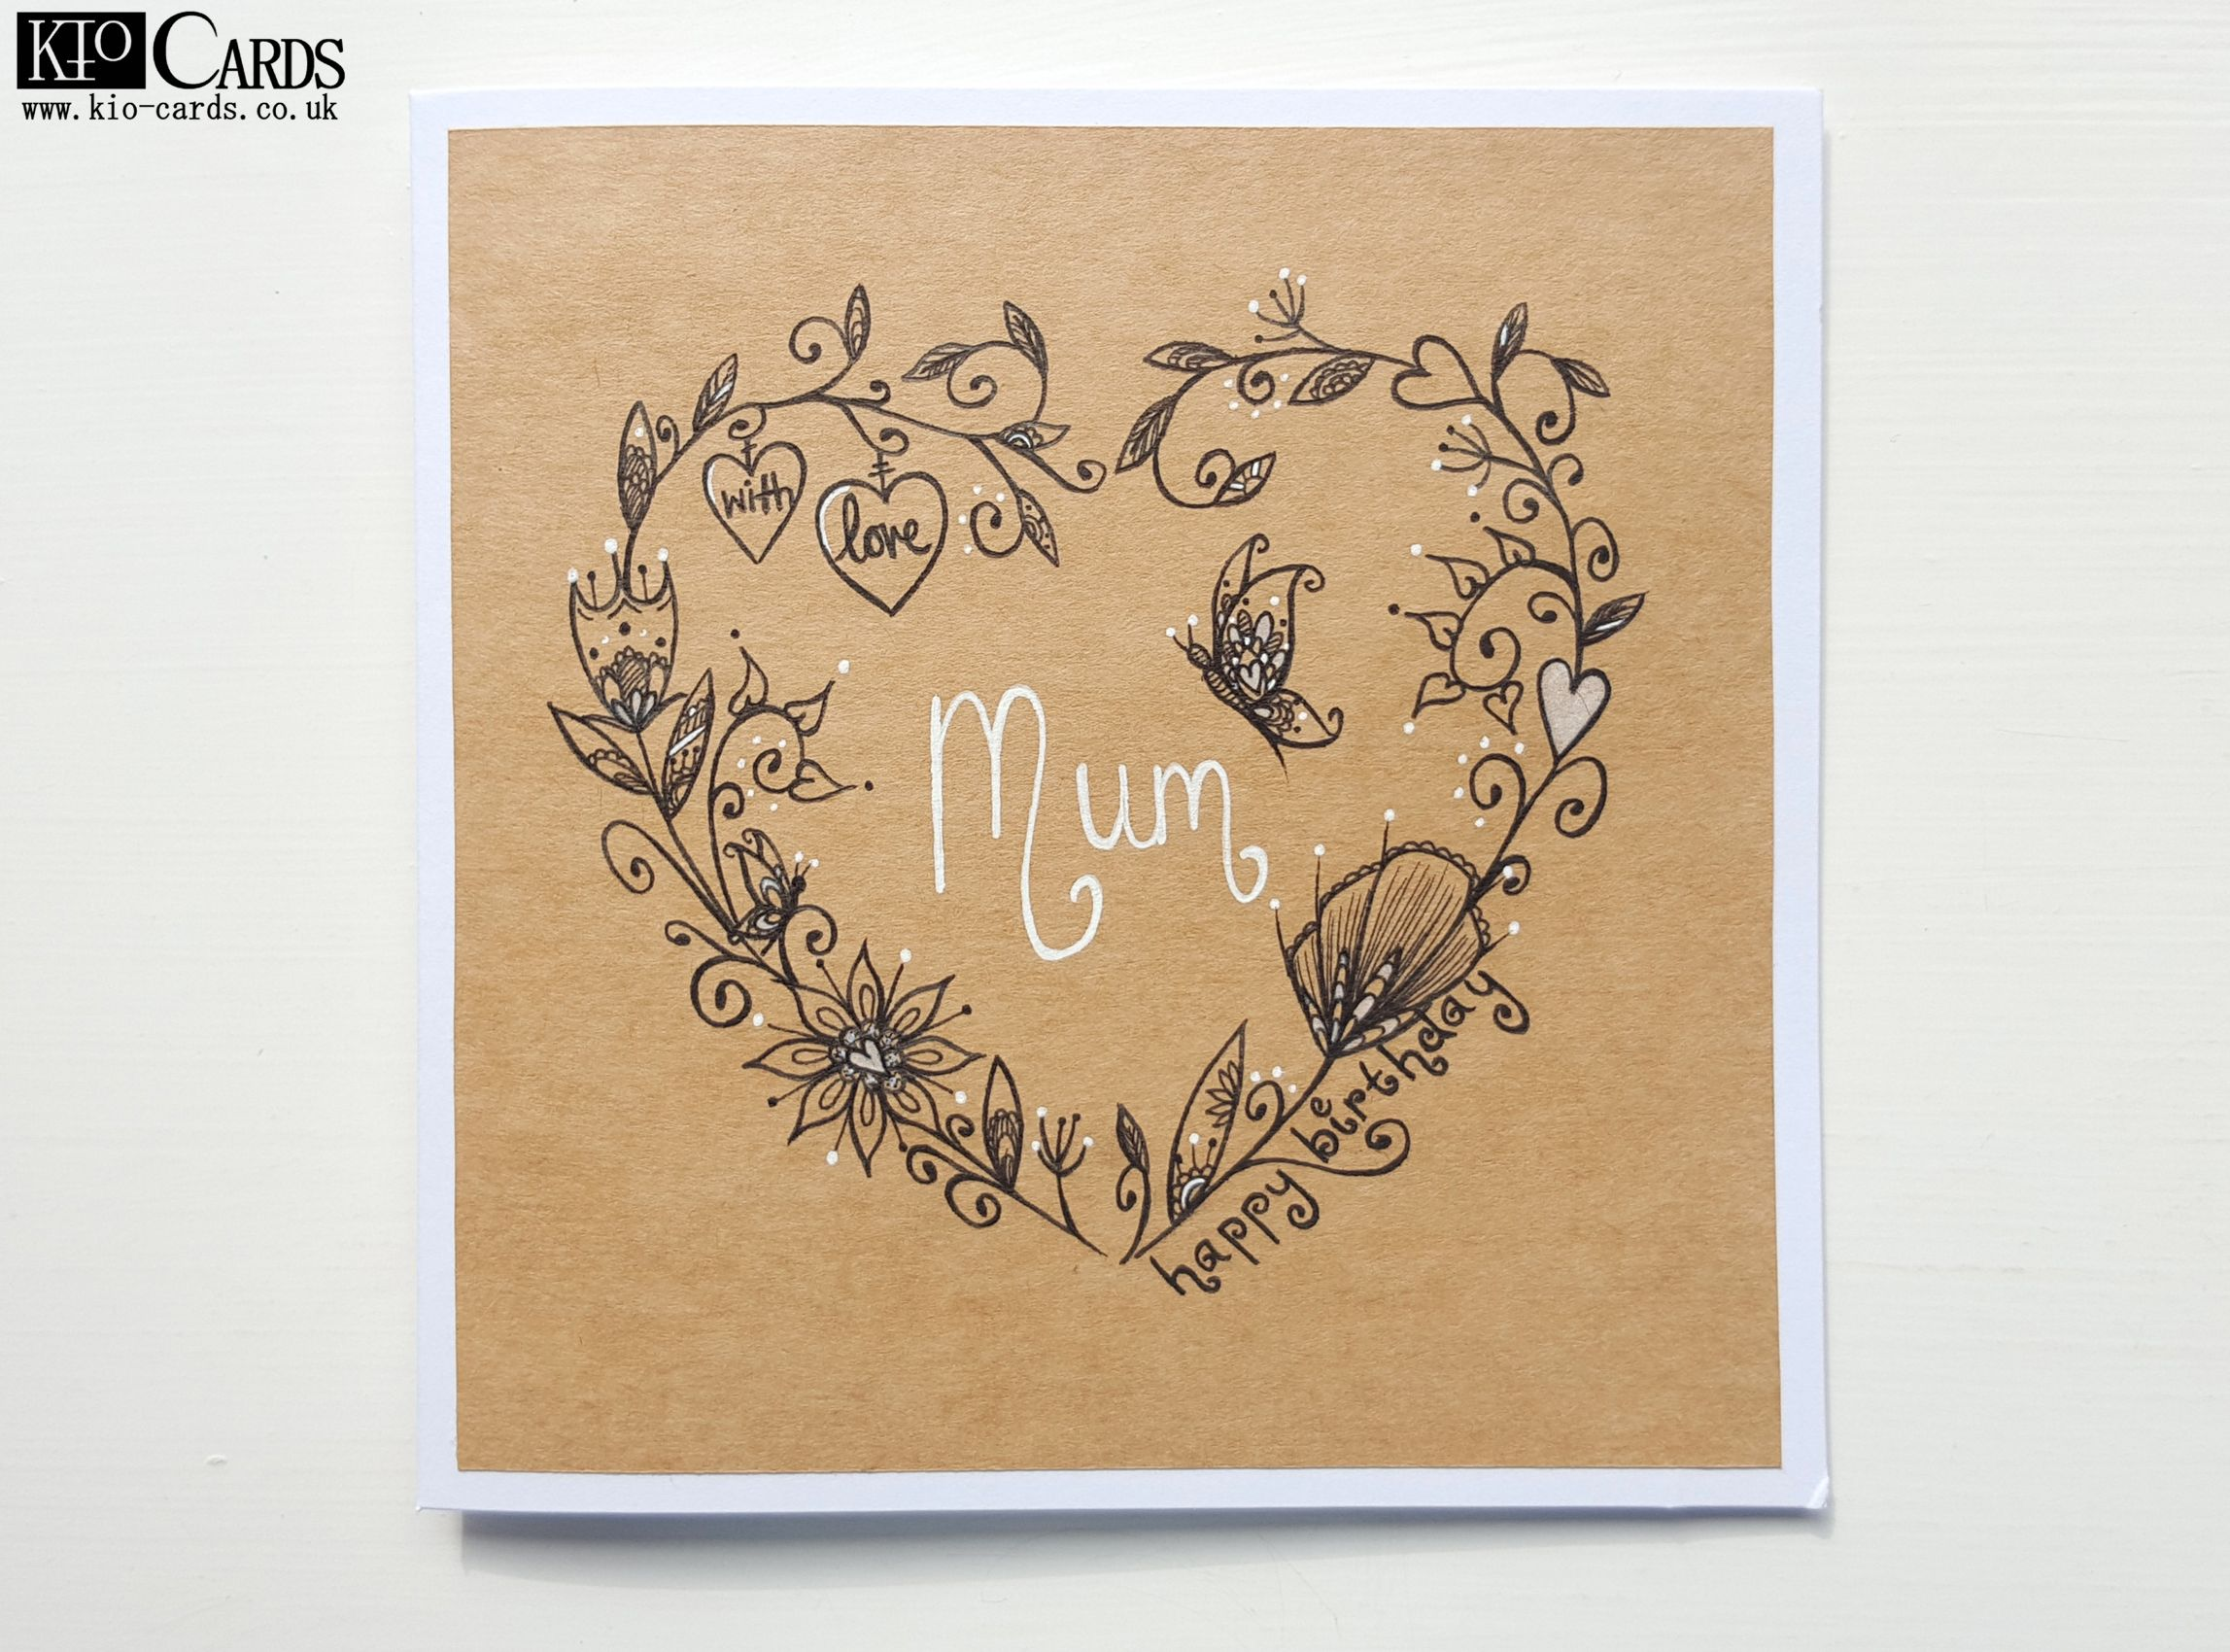 25 best mum birthday card ideas on pinterest mom birthday funny this beautiful butterfly card is sure to make your mums day extra special hand drawn lovely heart garland intertwined with hearts and flowers and with dhlflorist Choice Image